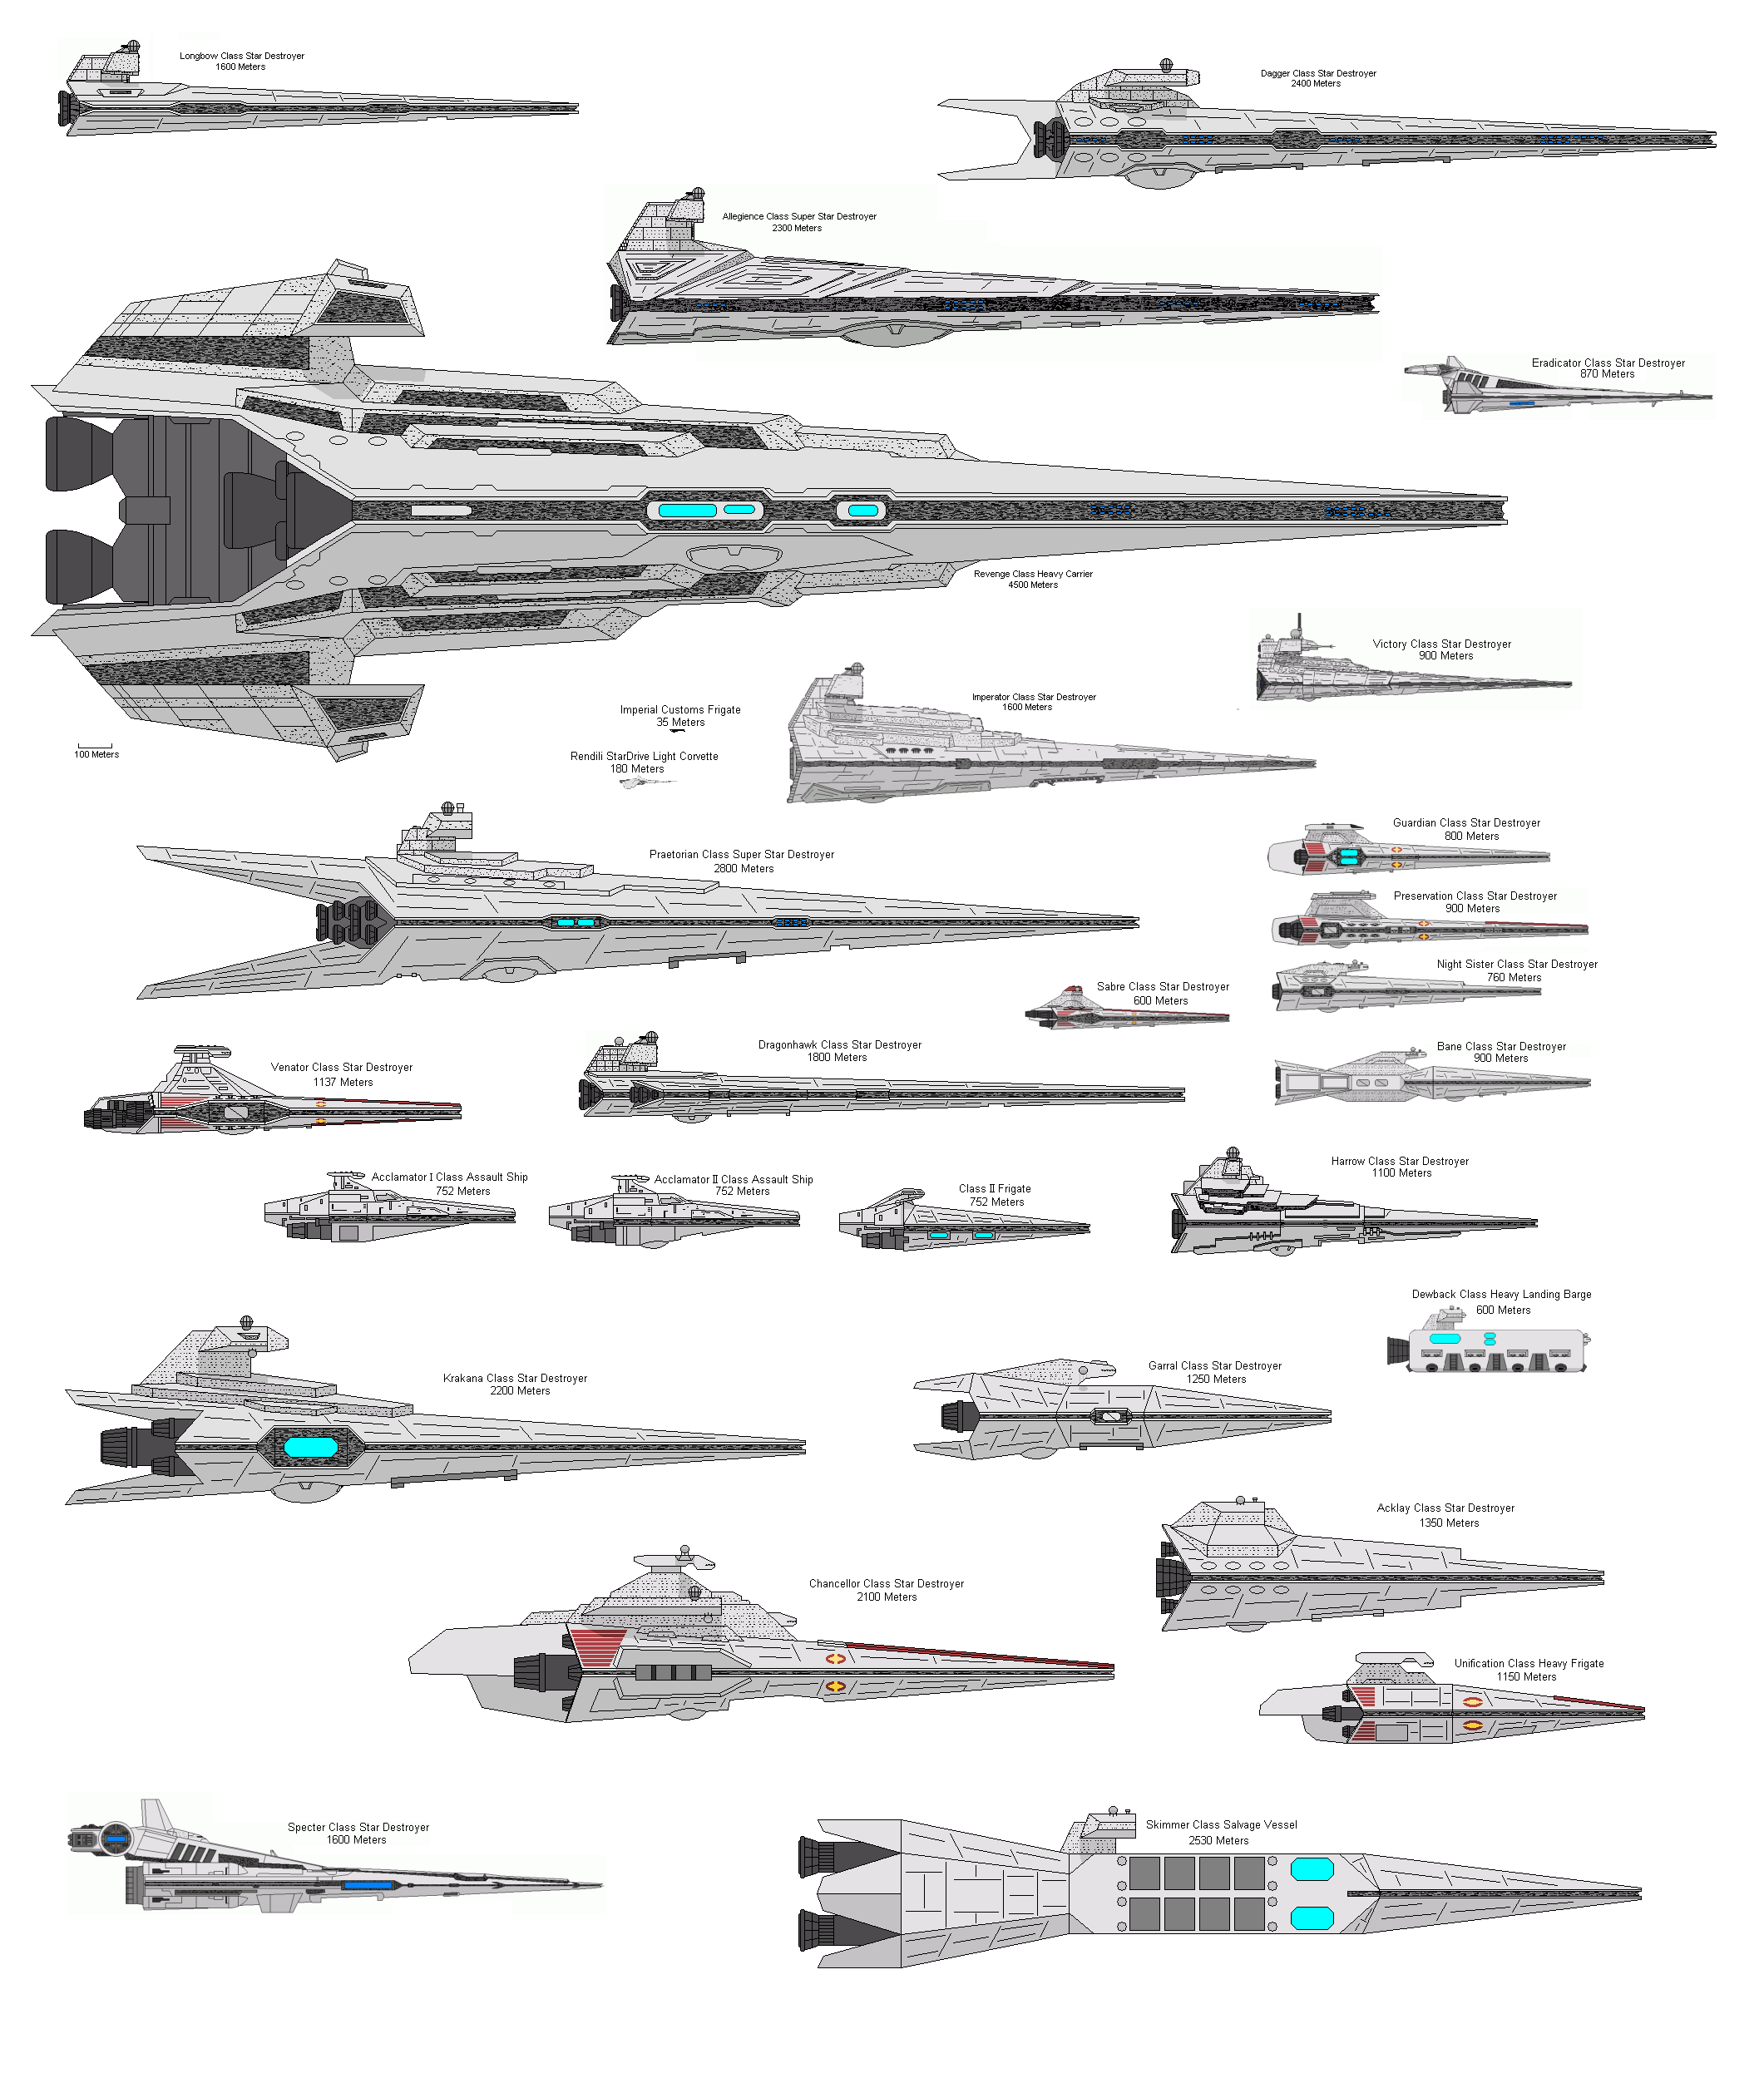 Star Destroyer Size Comparison (page 2) - Pics about space